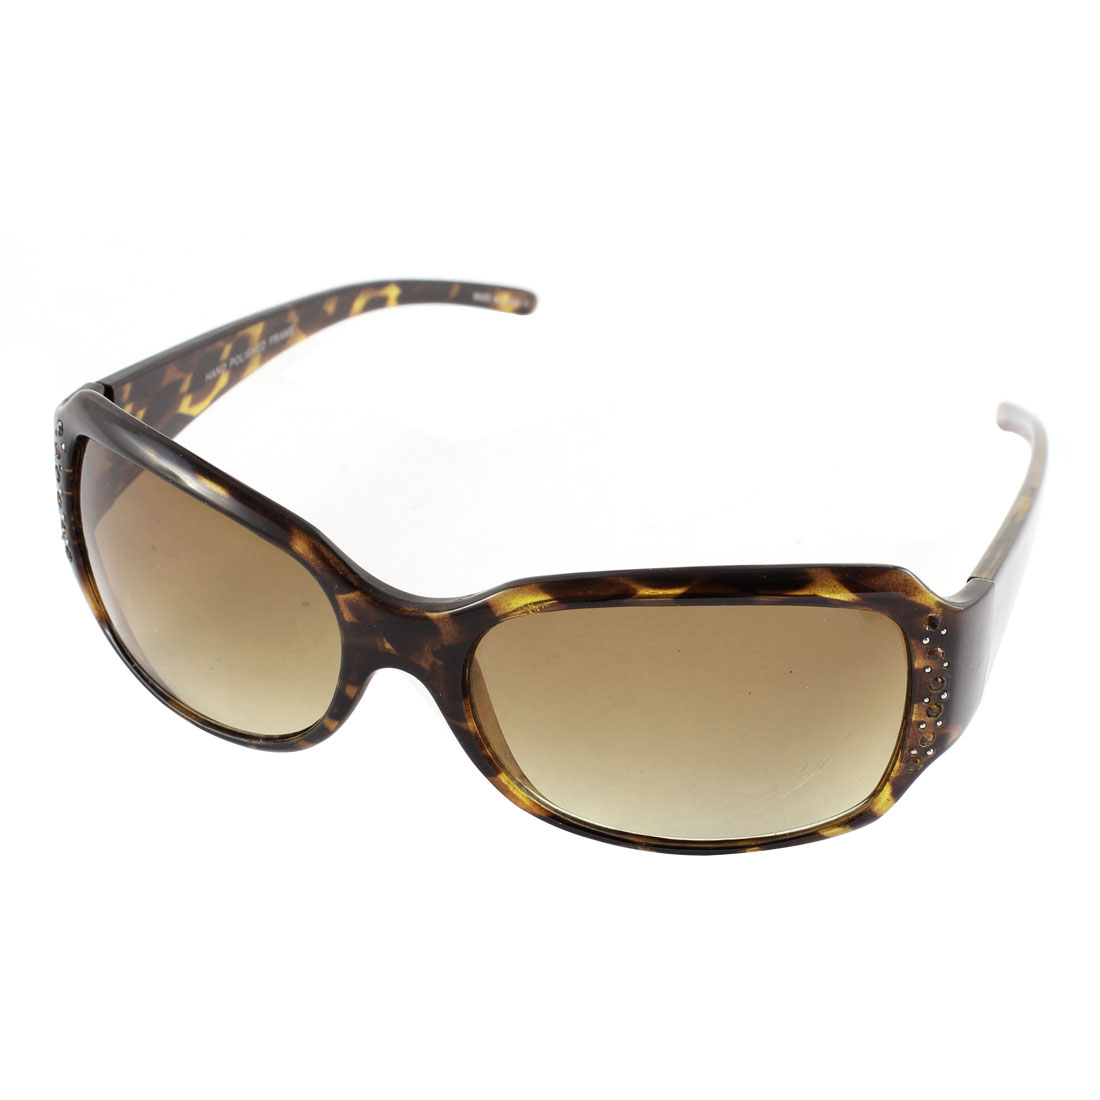 Plastic Rhinestone Decor Leopard Design Sunglasses Eyewear Brown